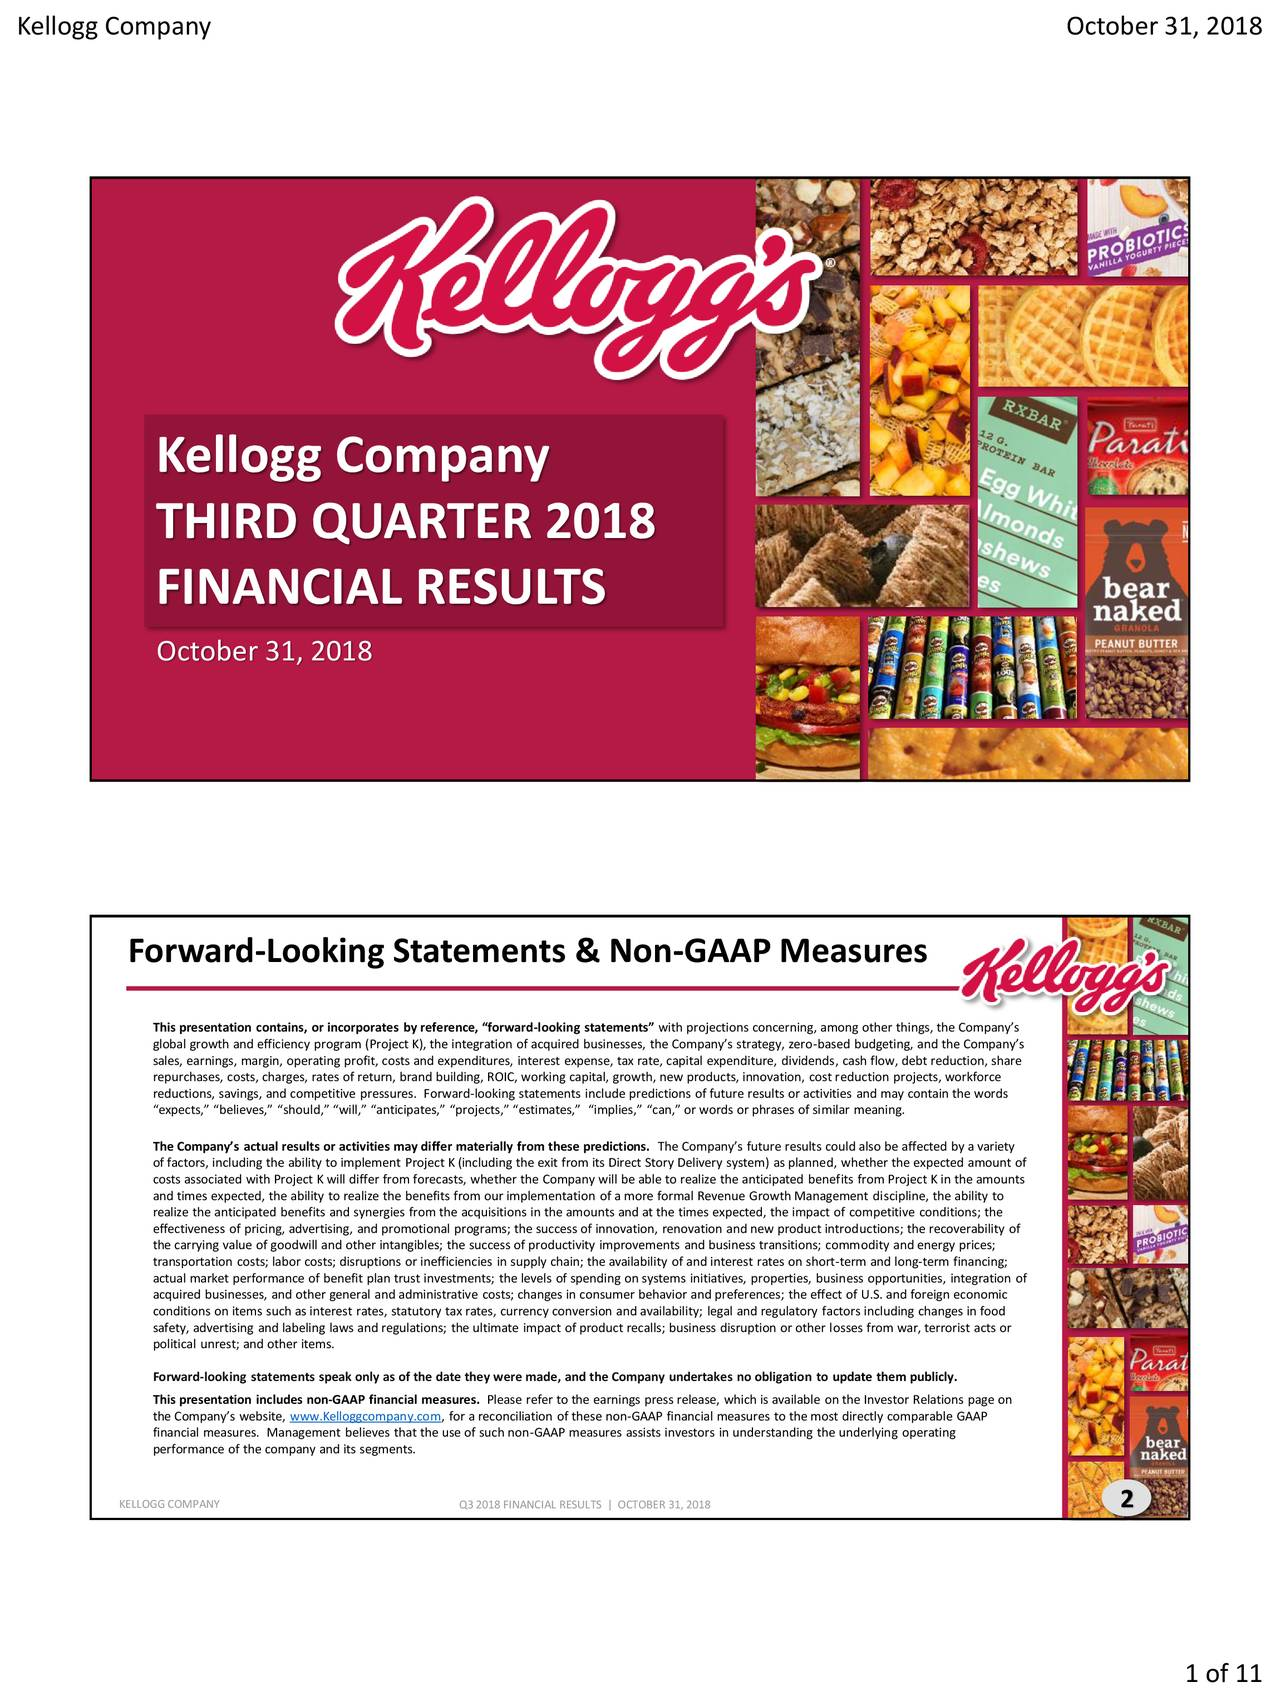 """Kellogg Company THIRD QUARTER 2018 FINANCIAL RESULTS October 31, 2018 Forward-Looking Statements & Non-GAAP Measures global growth and efficiency program (Project K), the integration of acquired businesses, the Company's strategy, zero-based budgeting, and the Company's sales, earnings, margin, operating profit, costs and expenditures, interest expense, tax rate, capital expenditure, dividends, cash flow, debt reduction, share repurchases, costs, charges, rates of return, brand building, ROIC, working capital, growth, new products, innovation, cost reduction projects, workforce reductions, savings, and competitive pressures. Forward-looking statements include predictions of future results or activities and may contain the words """"expects,"""" """"believes,"""" """"should,"""" """"will,"""" """"anticipates,"""" """"projects,"""" """"estimates,"""" """"implies,"""" """"can,"""" or words or phrases of similar meaning. The Company's actual results or activities may differ materially from these predictions. The Company's future results could also be affected by a variety of factors, including the ability to implement Project K (including the exit from its Direct Story Delivery system) as planned, whether the expected amount of costs associated with Project K will differ from forecasts, whether the Company will be able to realize the anticipated benefits from Project K in the amounts and times expected, the ability to realize the benefits from our implementation of a more formal Revenue Growth Management discipline, the ability to realize the anticipated benefits and synergies from the acquisitions in the amounts and at the times expected, the impact of competitive conditions; the the carrying value of goodwill and other intangibles; the success of productivity improvements and business transitions; commodity and energy prices;ity of transportation costs; labor costs; disruptions or inefficiencies in supply chain; the availability of and interest rates on short-term and long-term financing; actual market performance of ben"""